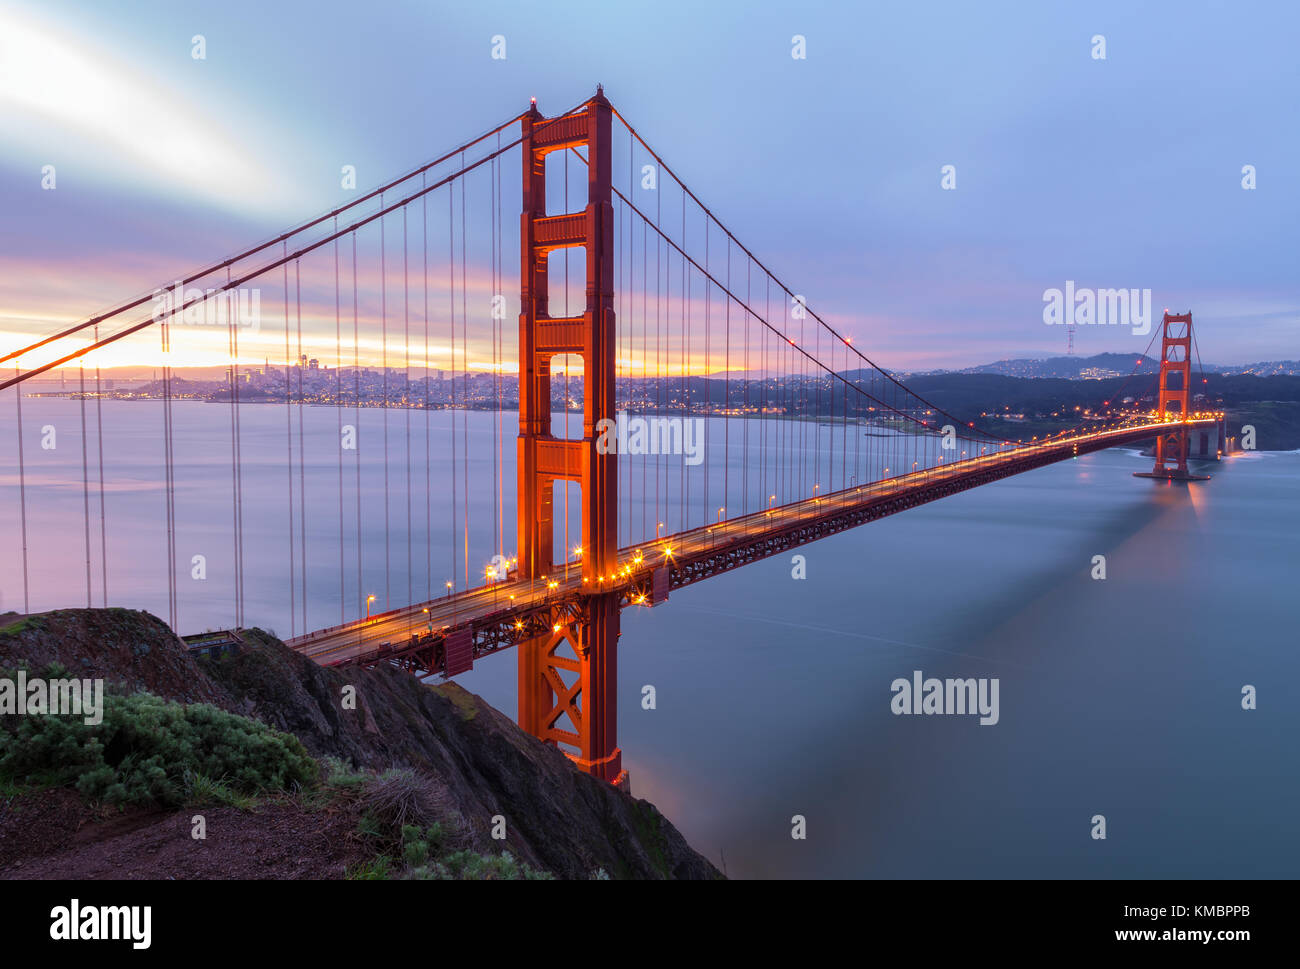 Golden Gate Bridge and the San Francisco Bay, California, United States, at dawn. - Stock Image